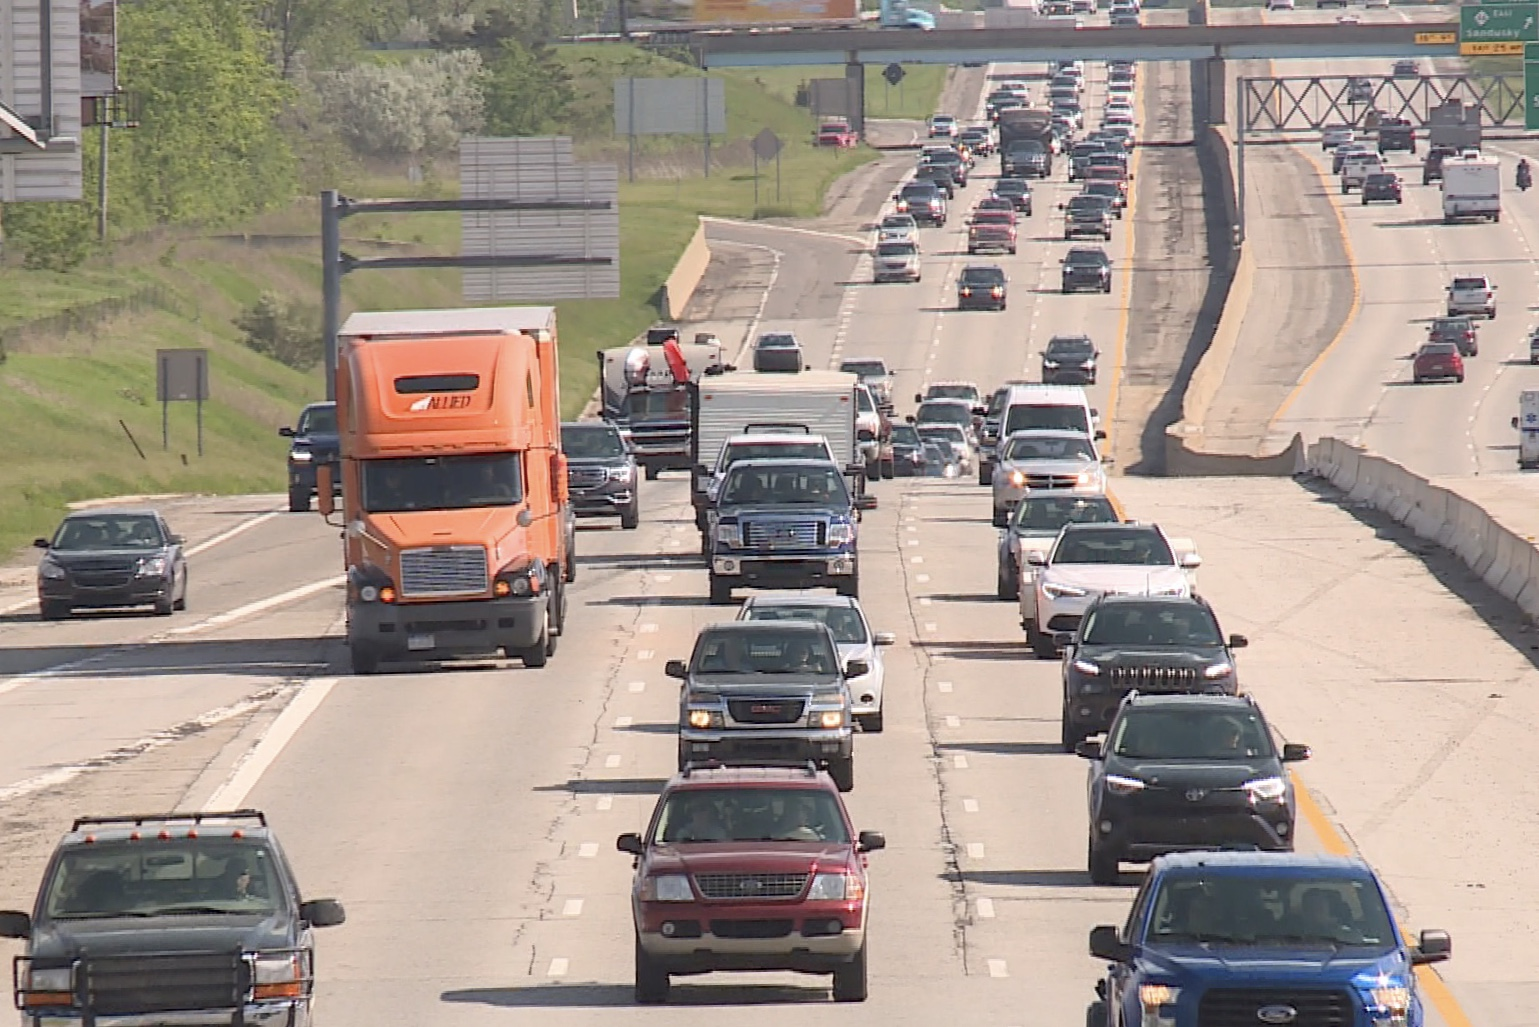 Memorial Day traffic ties up area roads